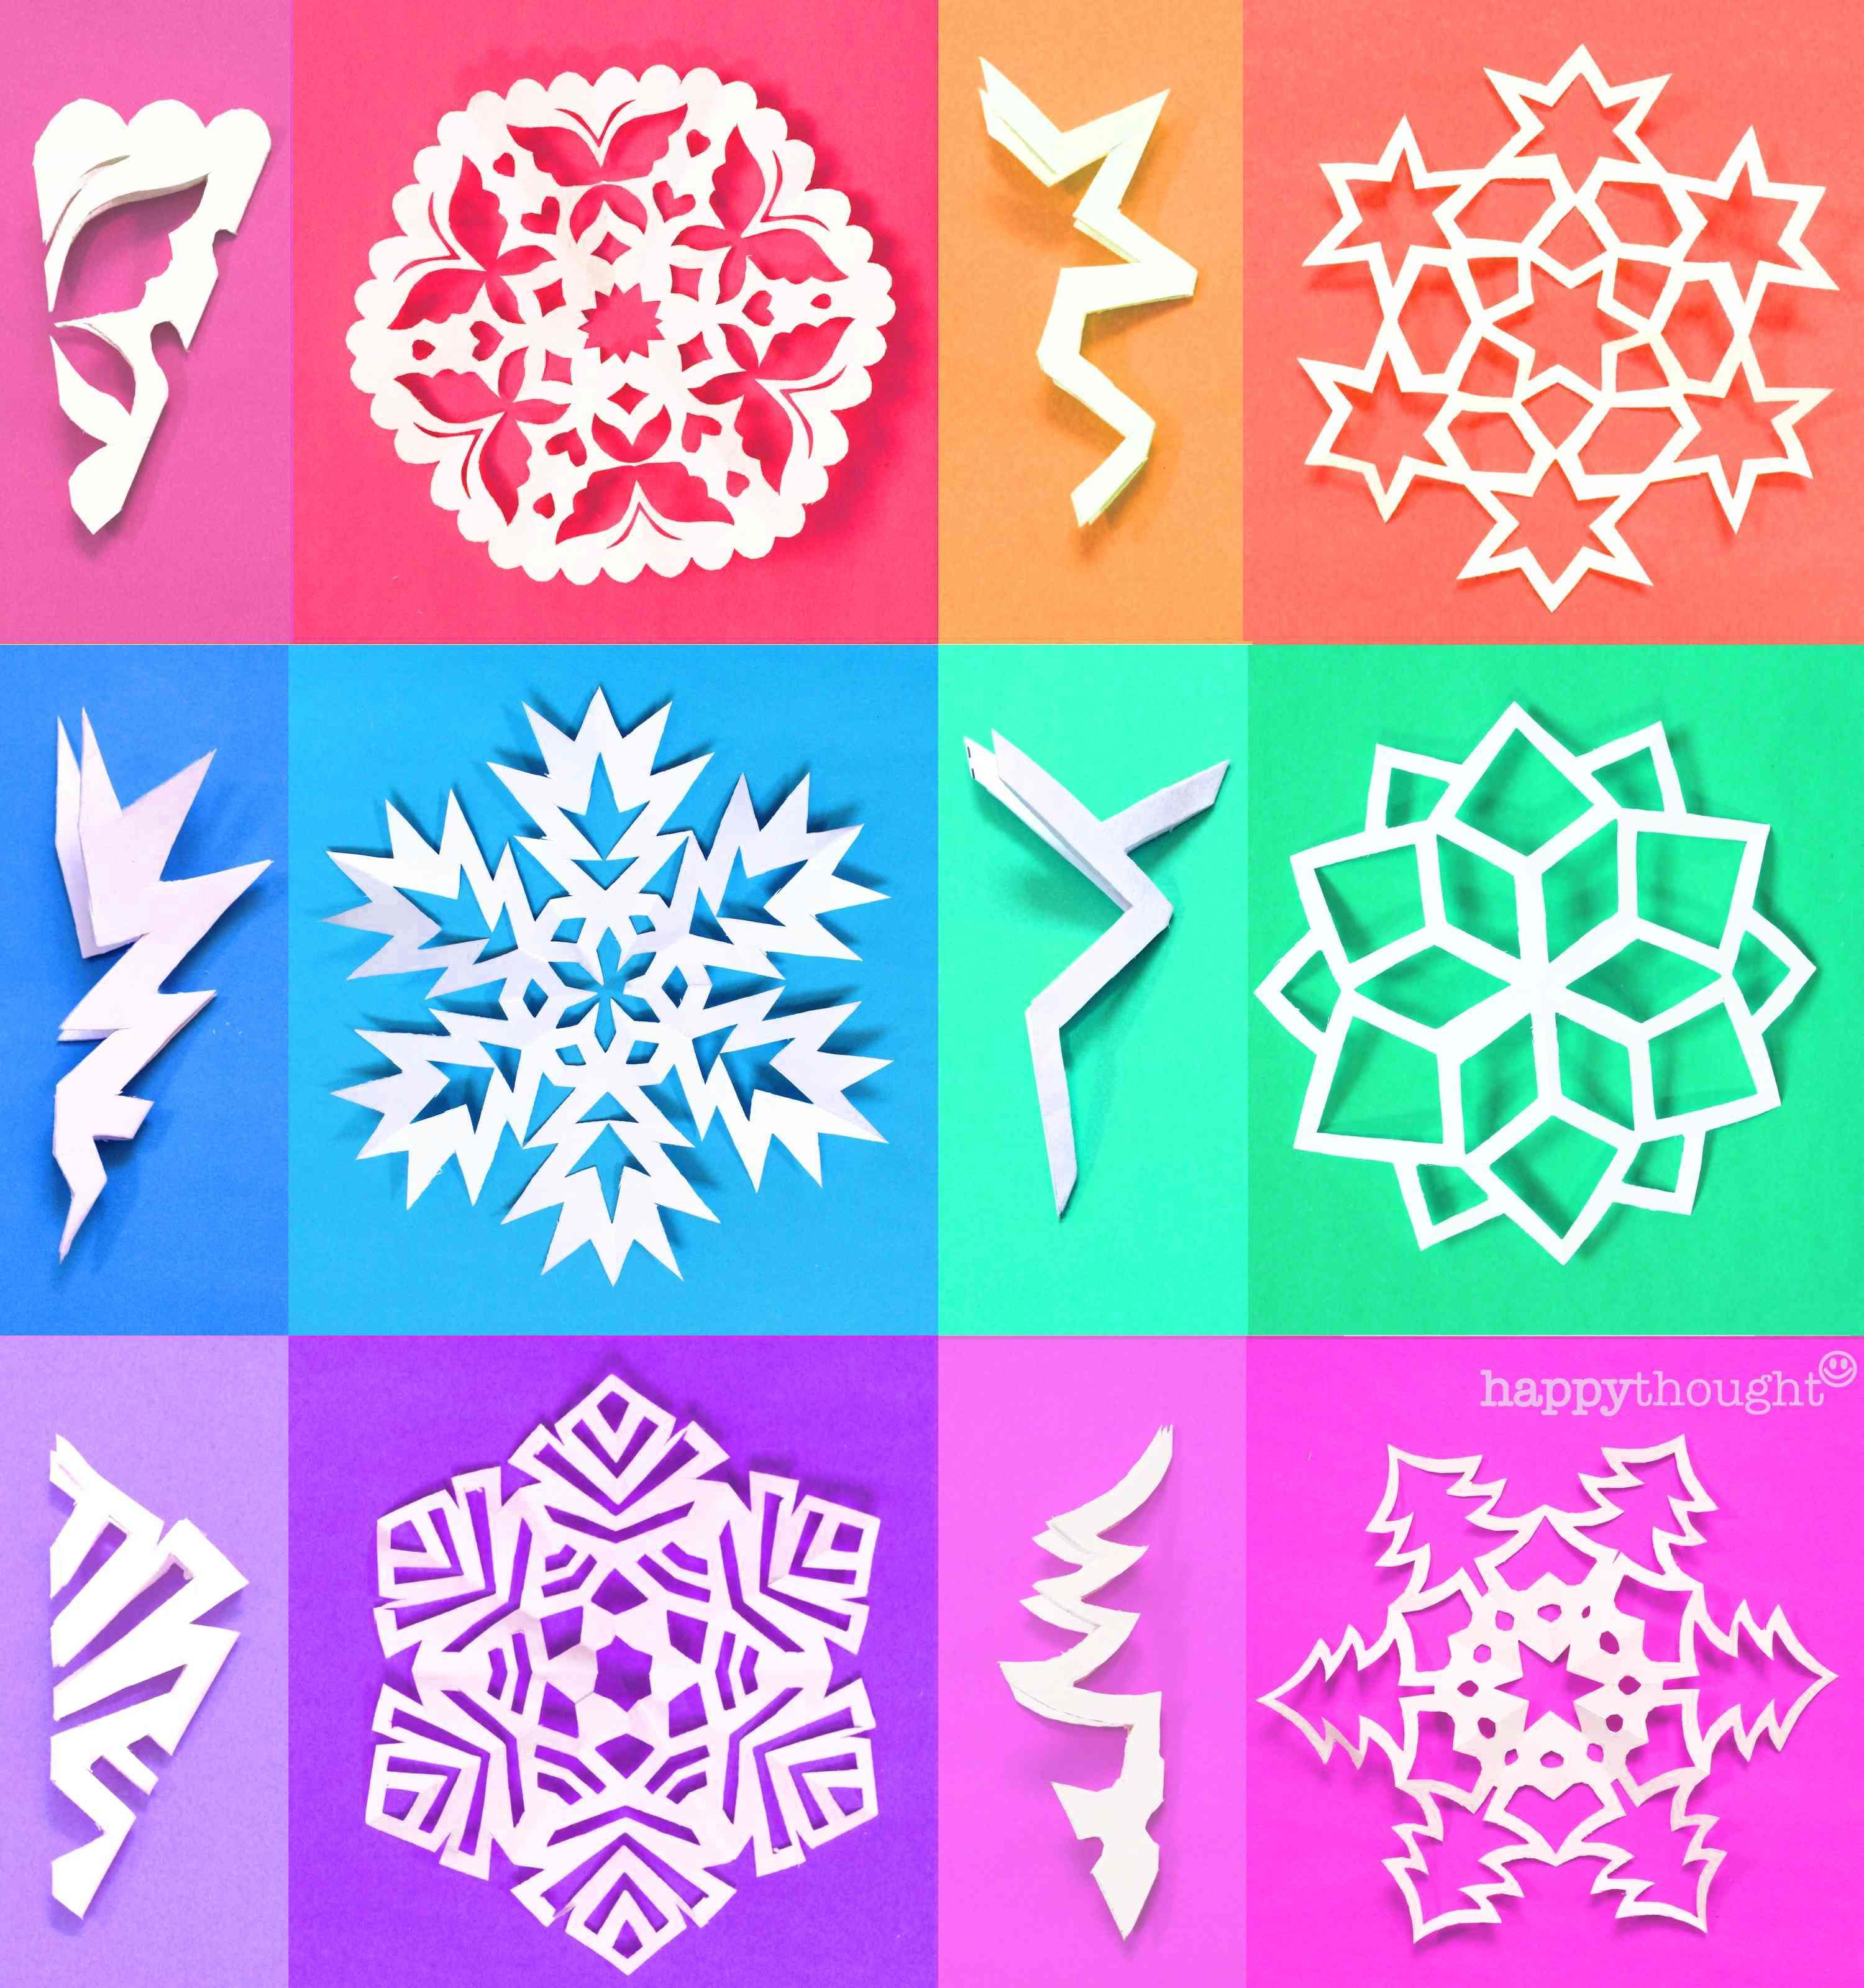 DIY PAPER SNOWFLAKES - PRINTABLE TEMPLATES FROM HAPPYTHOUGHT.CO.UK